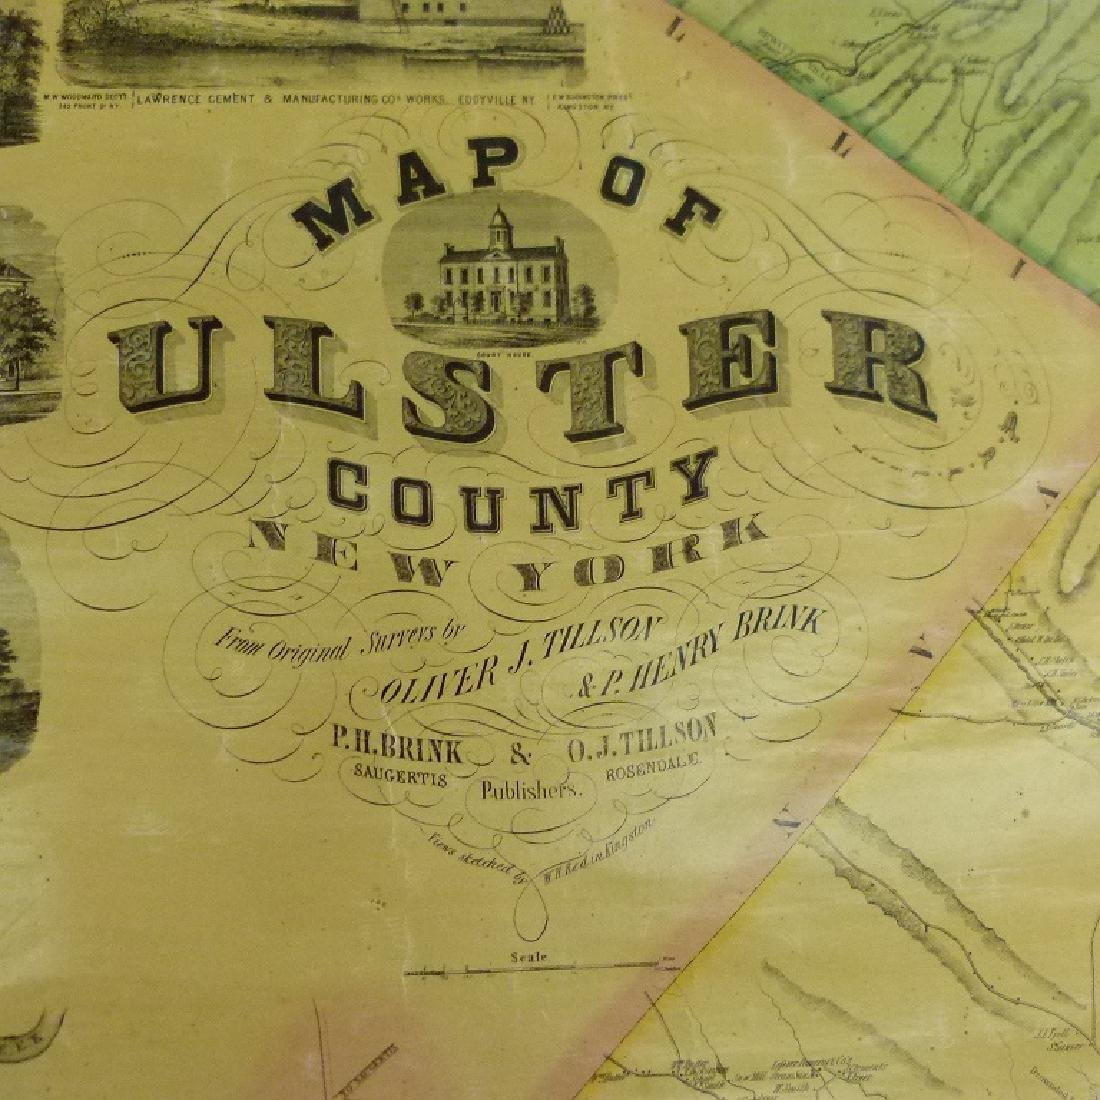 MAP OF ULSTER COUNTY NEW YORK, 1853